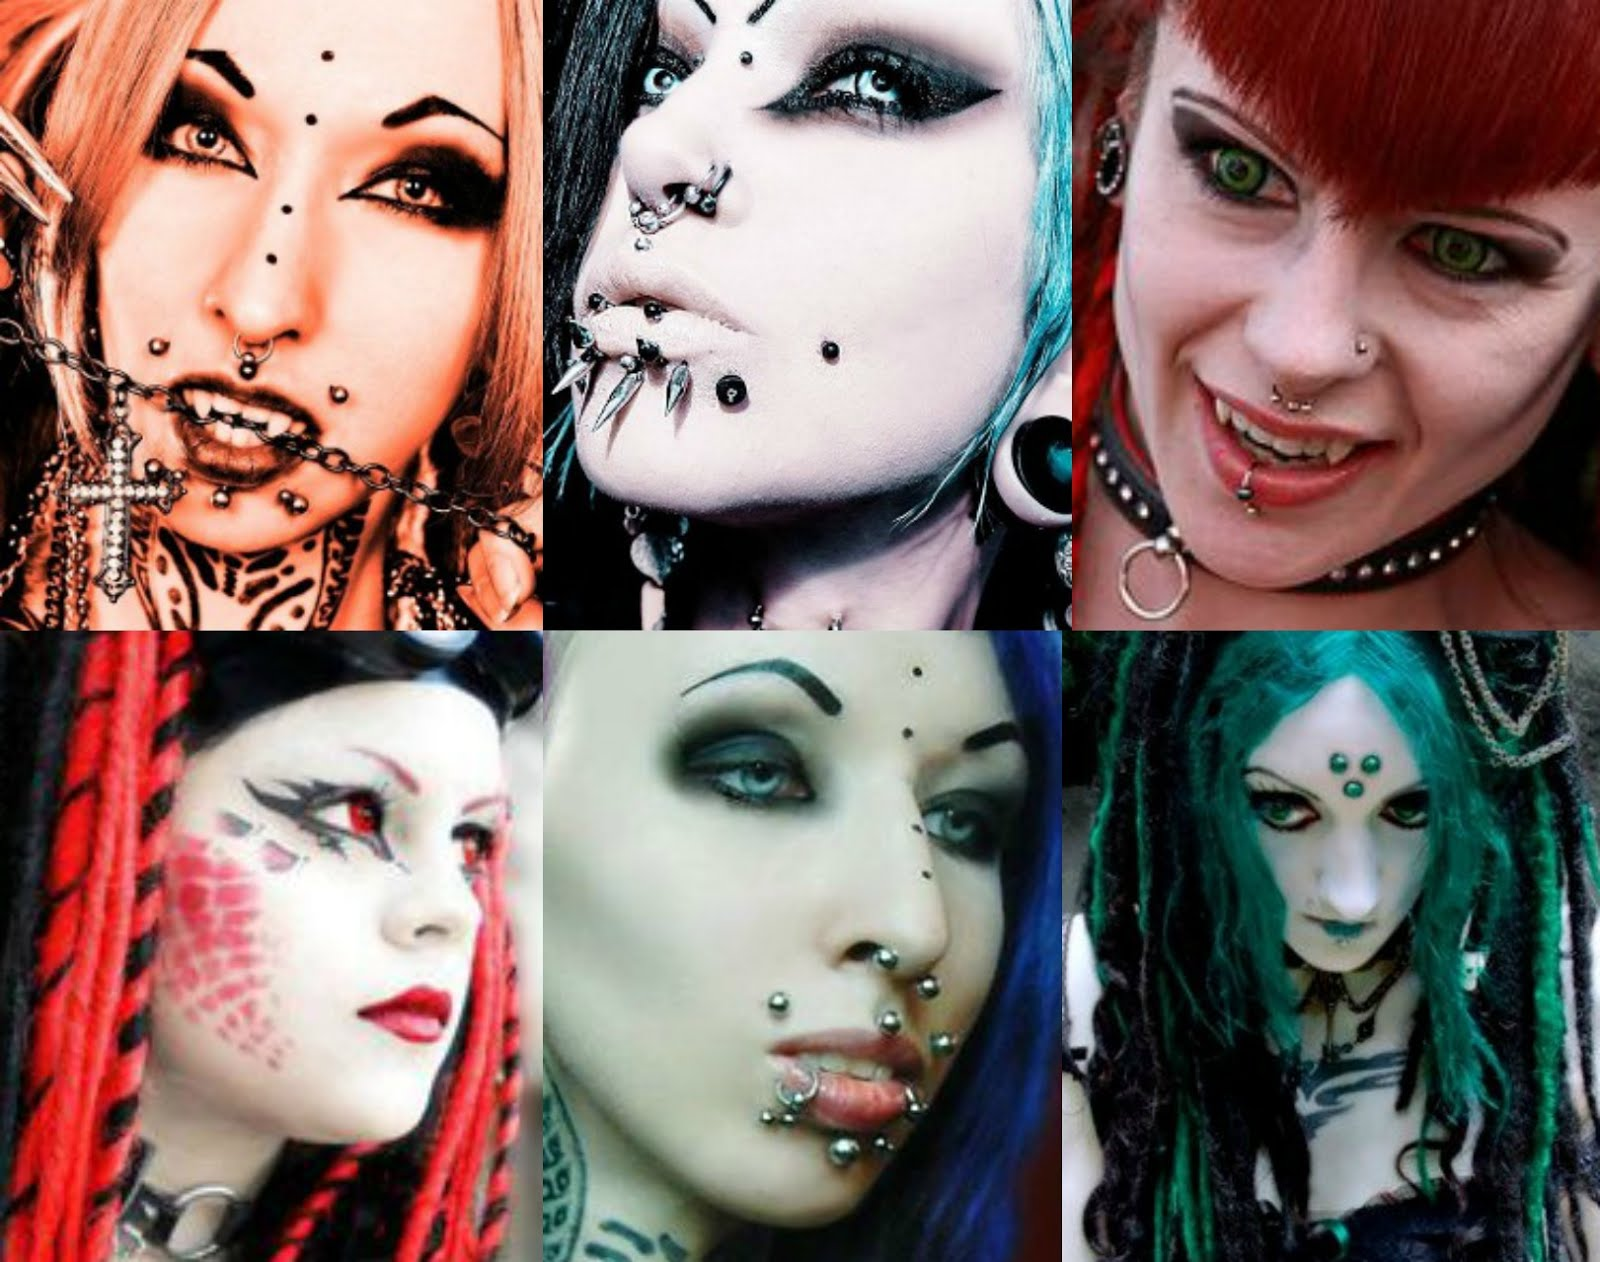 Cybergoth clothing